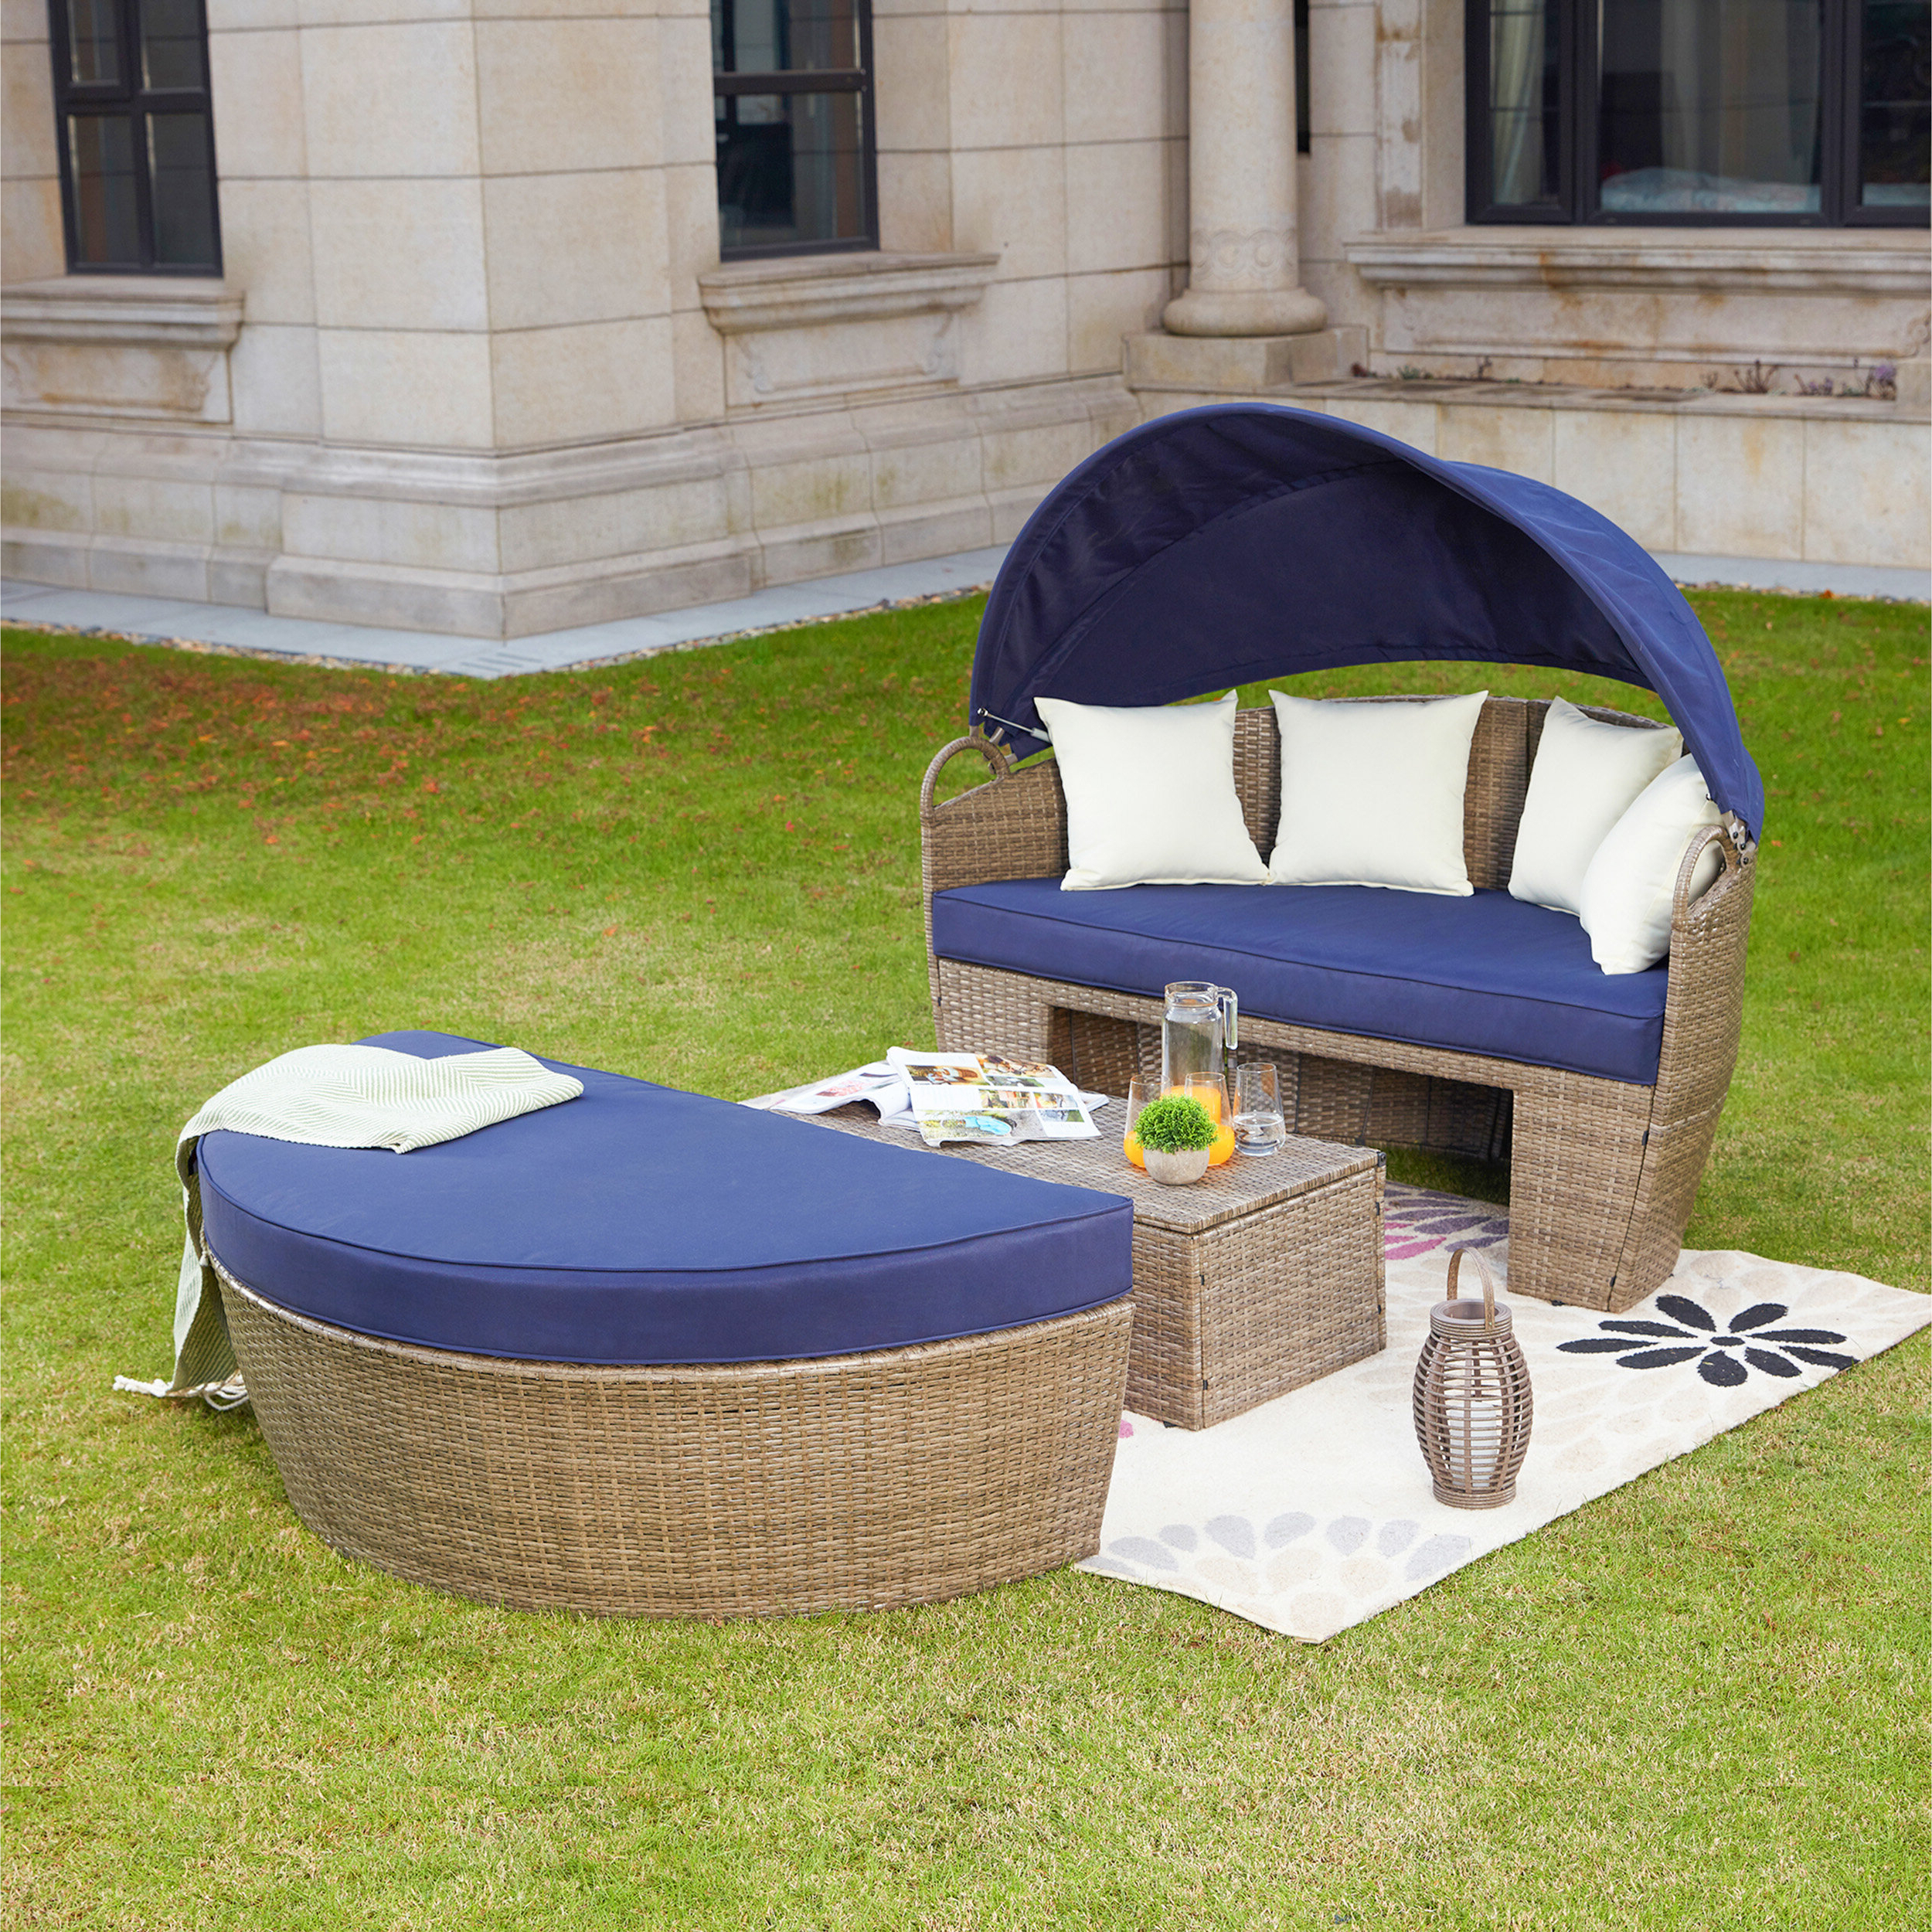 Popular Modern Outdoor Daybeds (View 16 of 20)